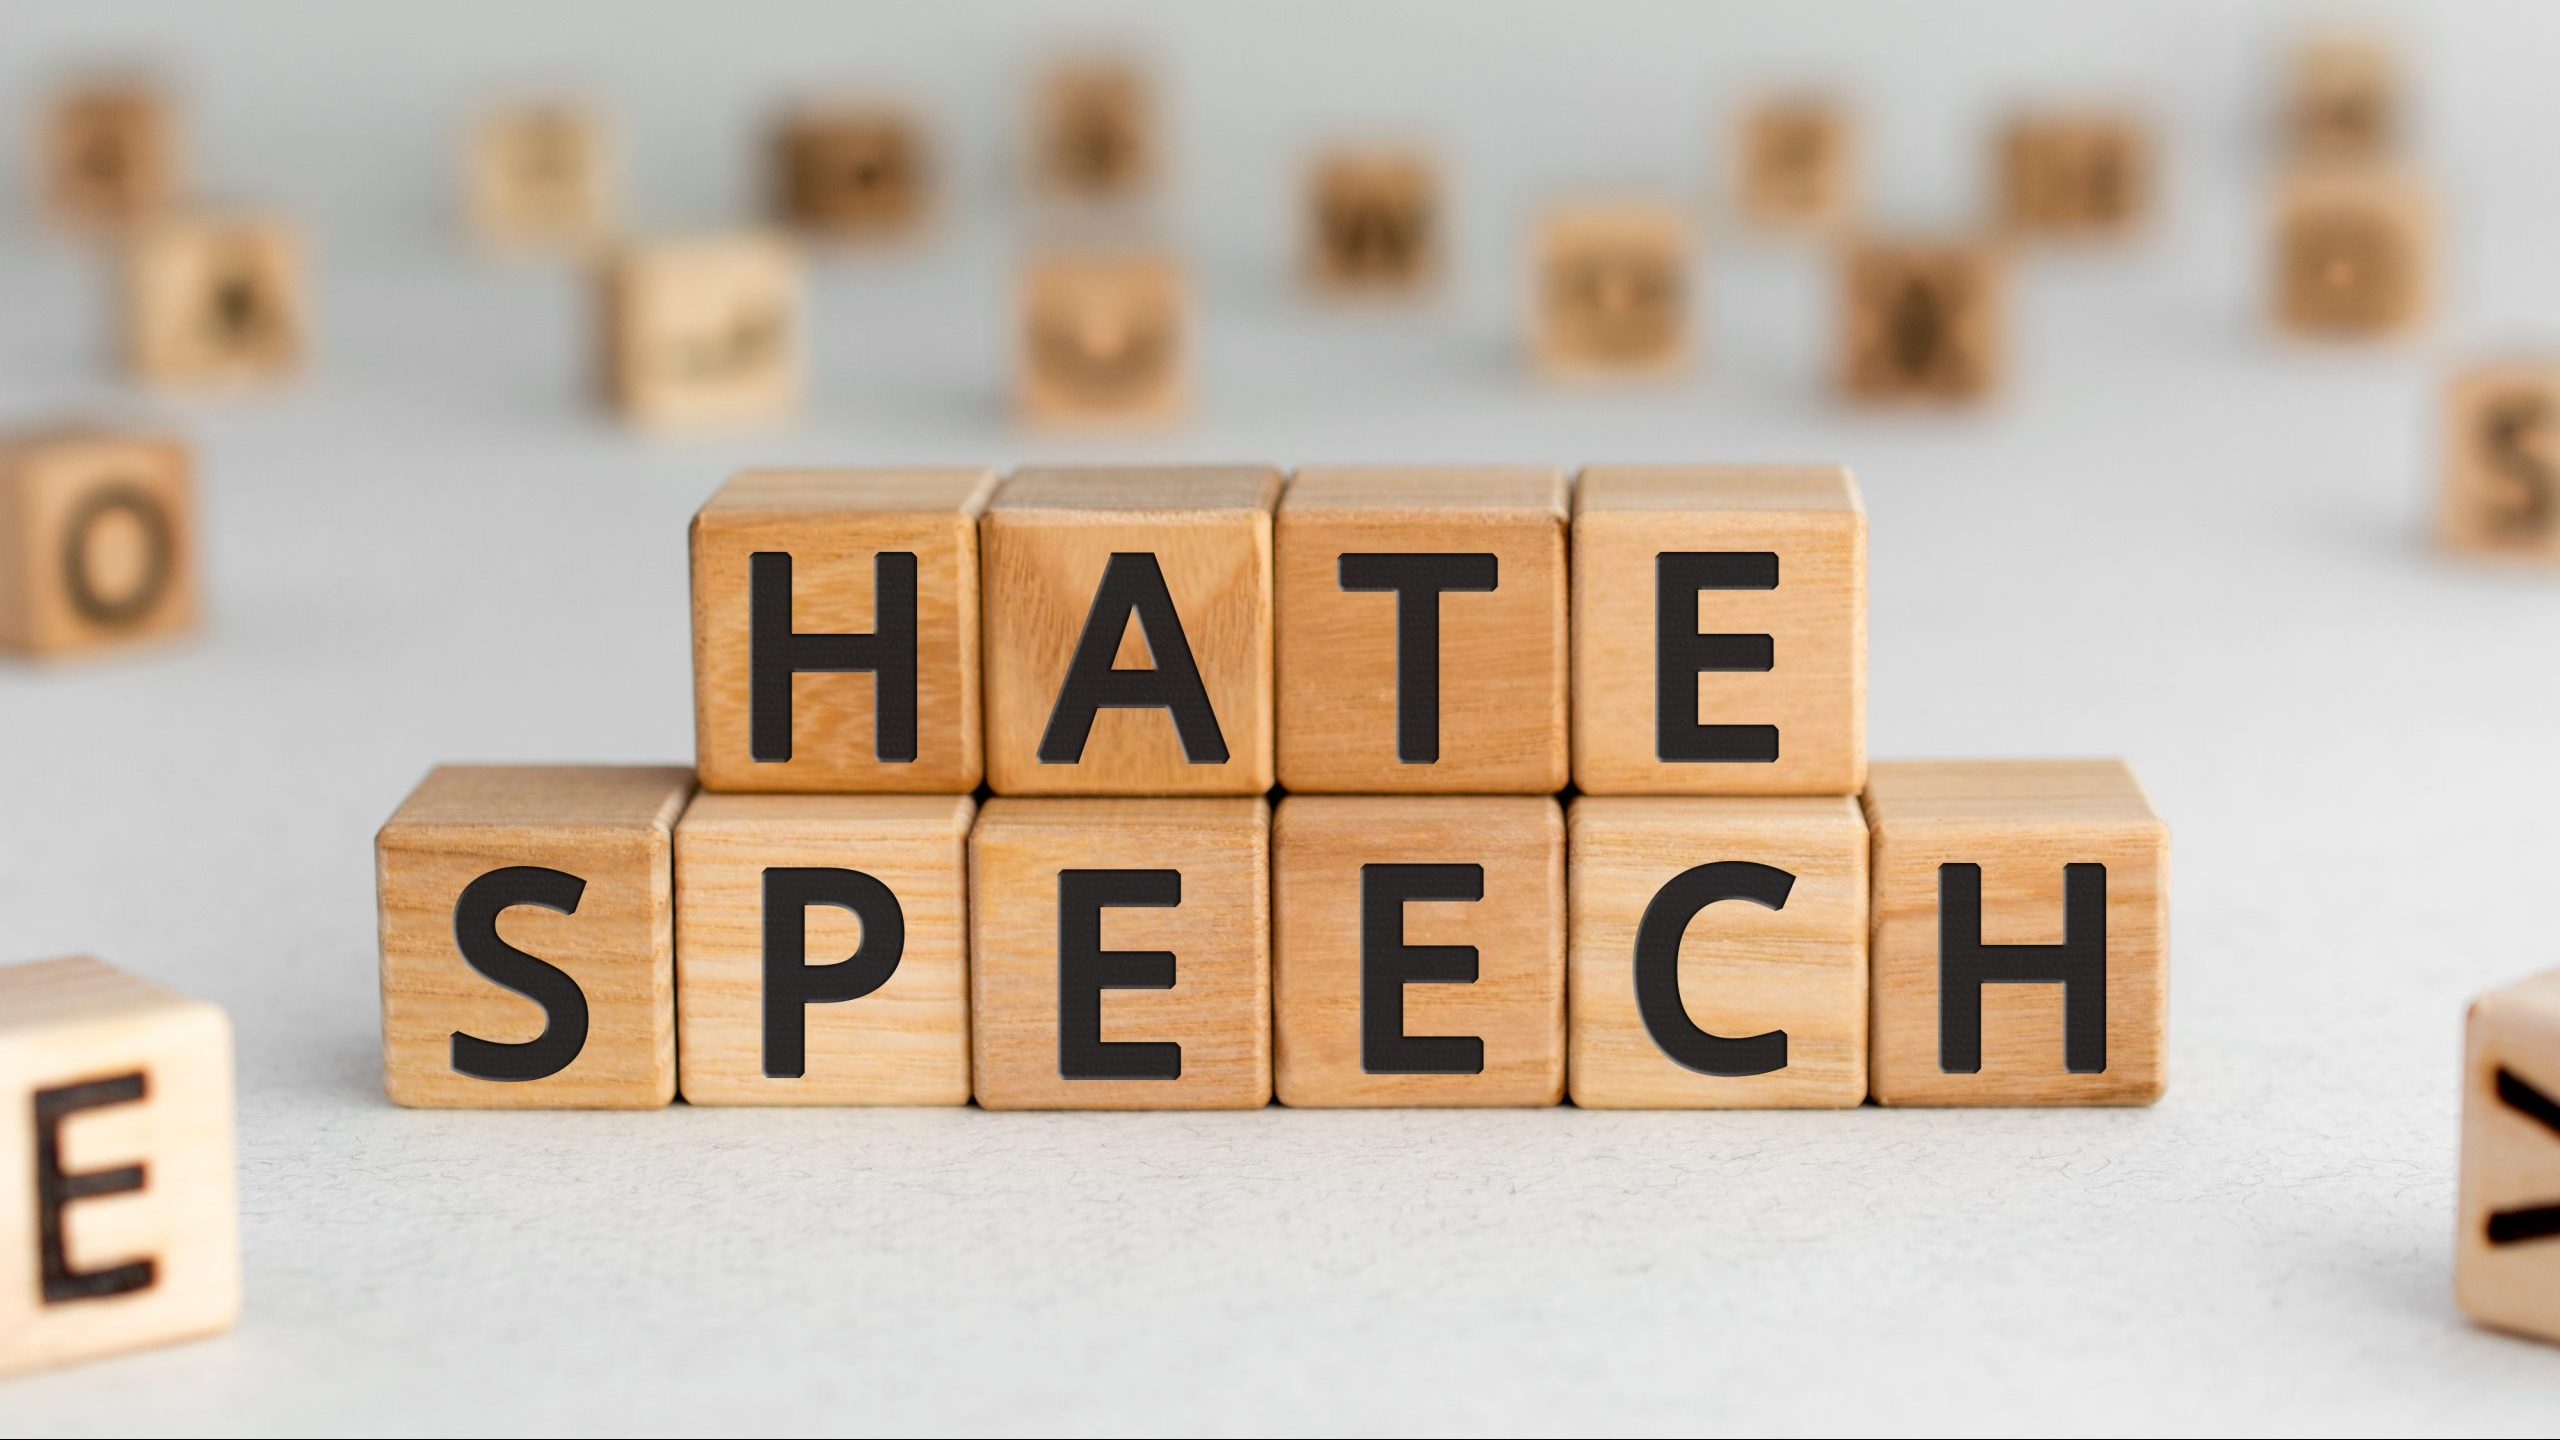 Hate speech - words from wooden blocks with letters, speech that attacks a basis attributes such as race, religion, gender identity hate speech concept, random letters around, white  background